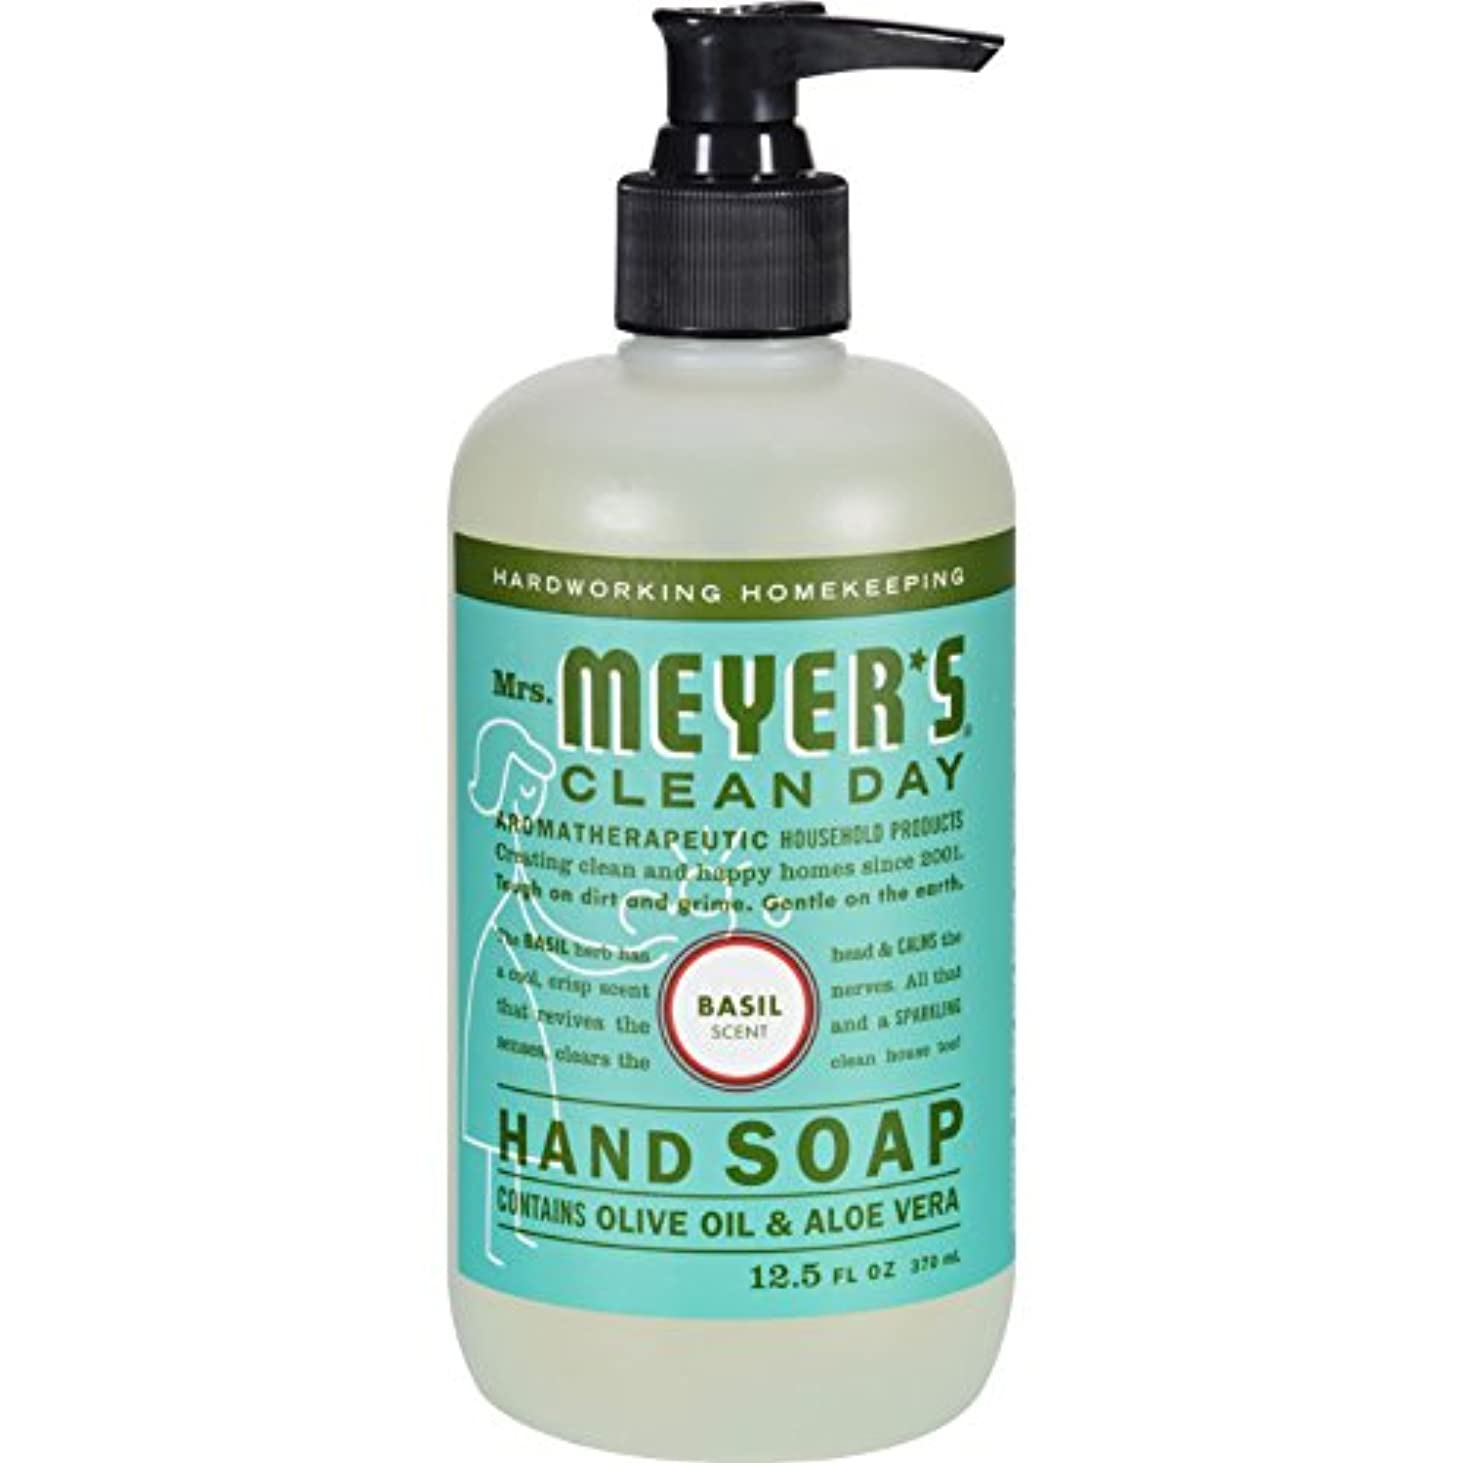 正確さインテリアハイキングMRS. MEYER'S HAND SOAP,LIQ,BASIL, 12.5 FZ by Mrs. Meyer's Clean Day